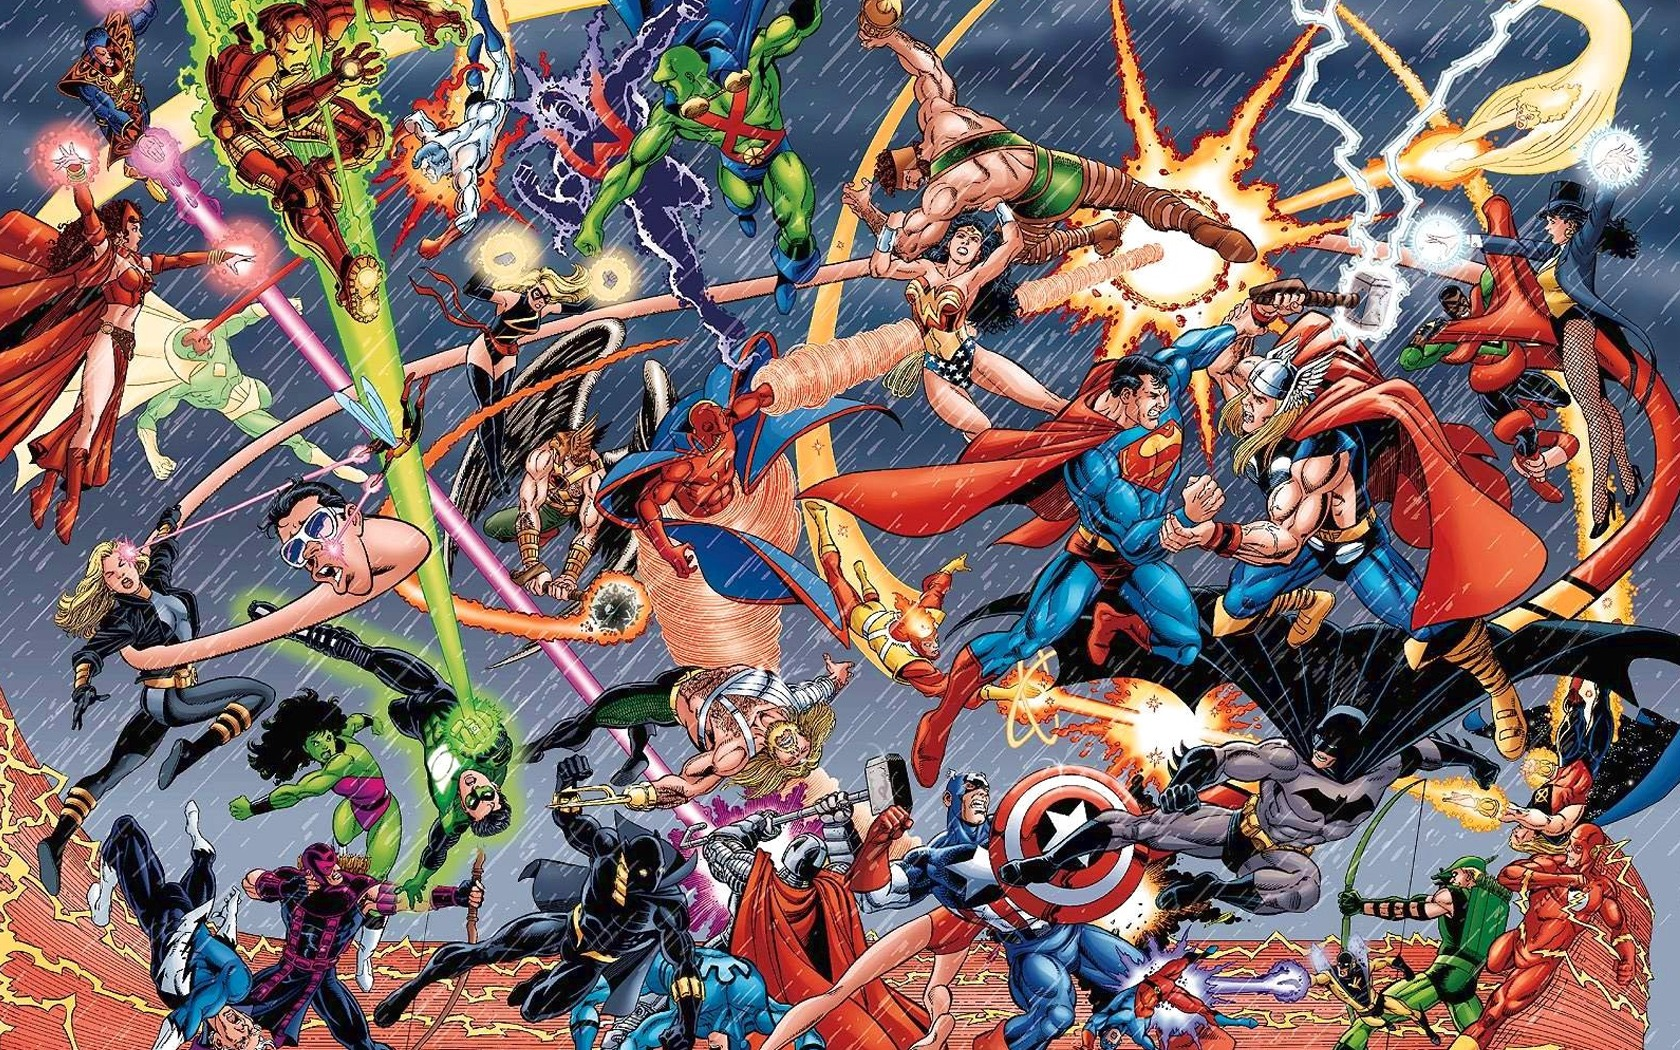 Summer 2015 Marvels Secret Wars DCs Convergence AMALGAM 1680x1050